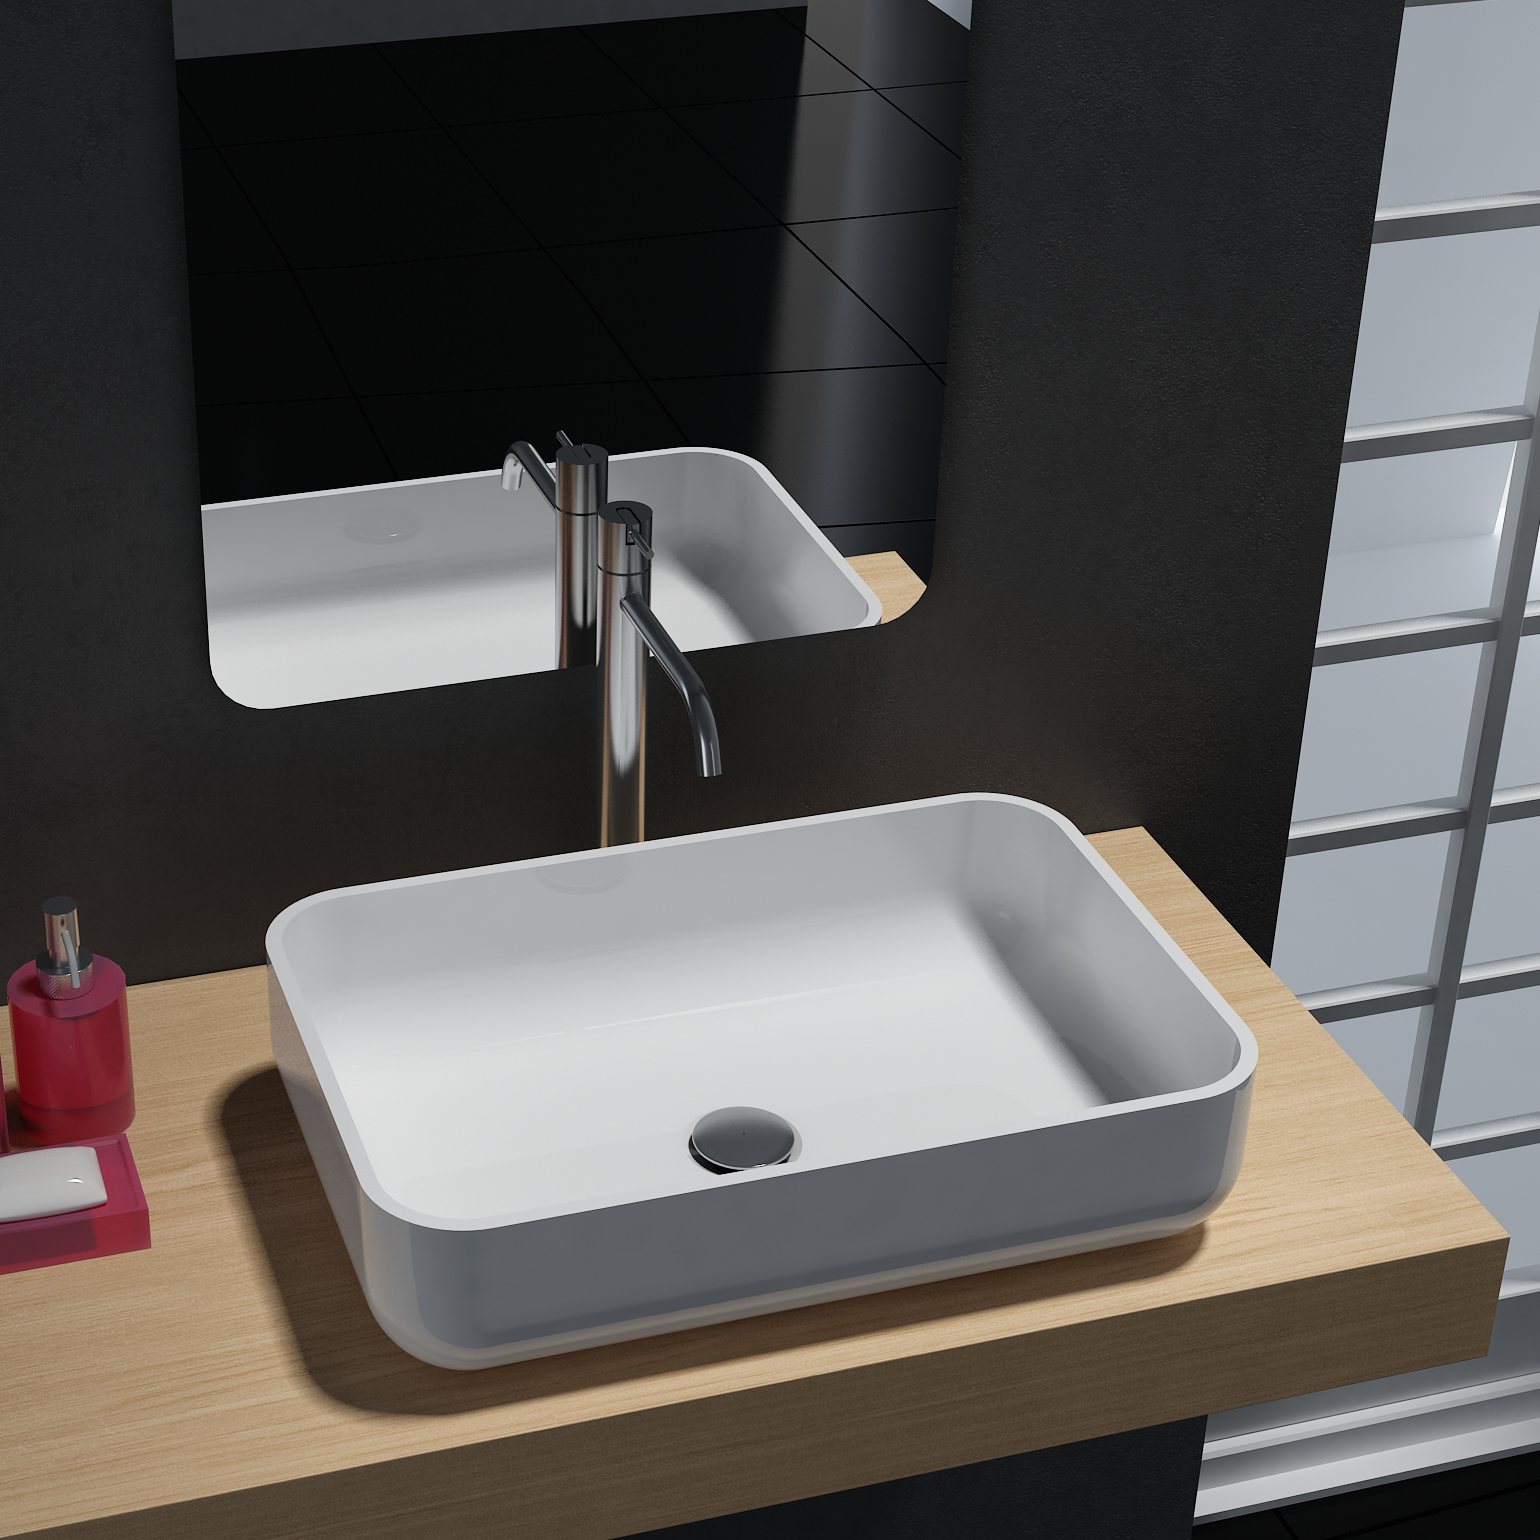 Countertop wash basin PB2133 - mineral cast - glossy black, matt white or  glossy black/white - 54 x 36 x 13 cm